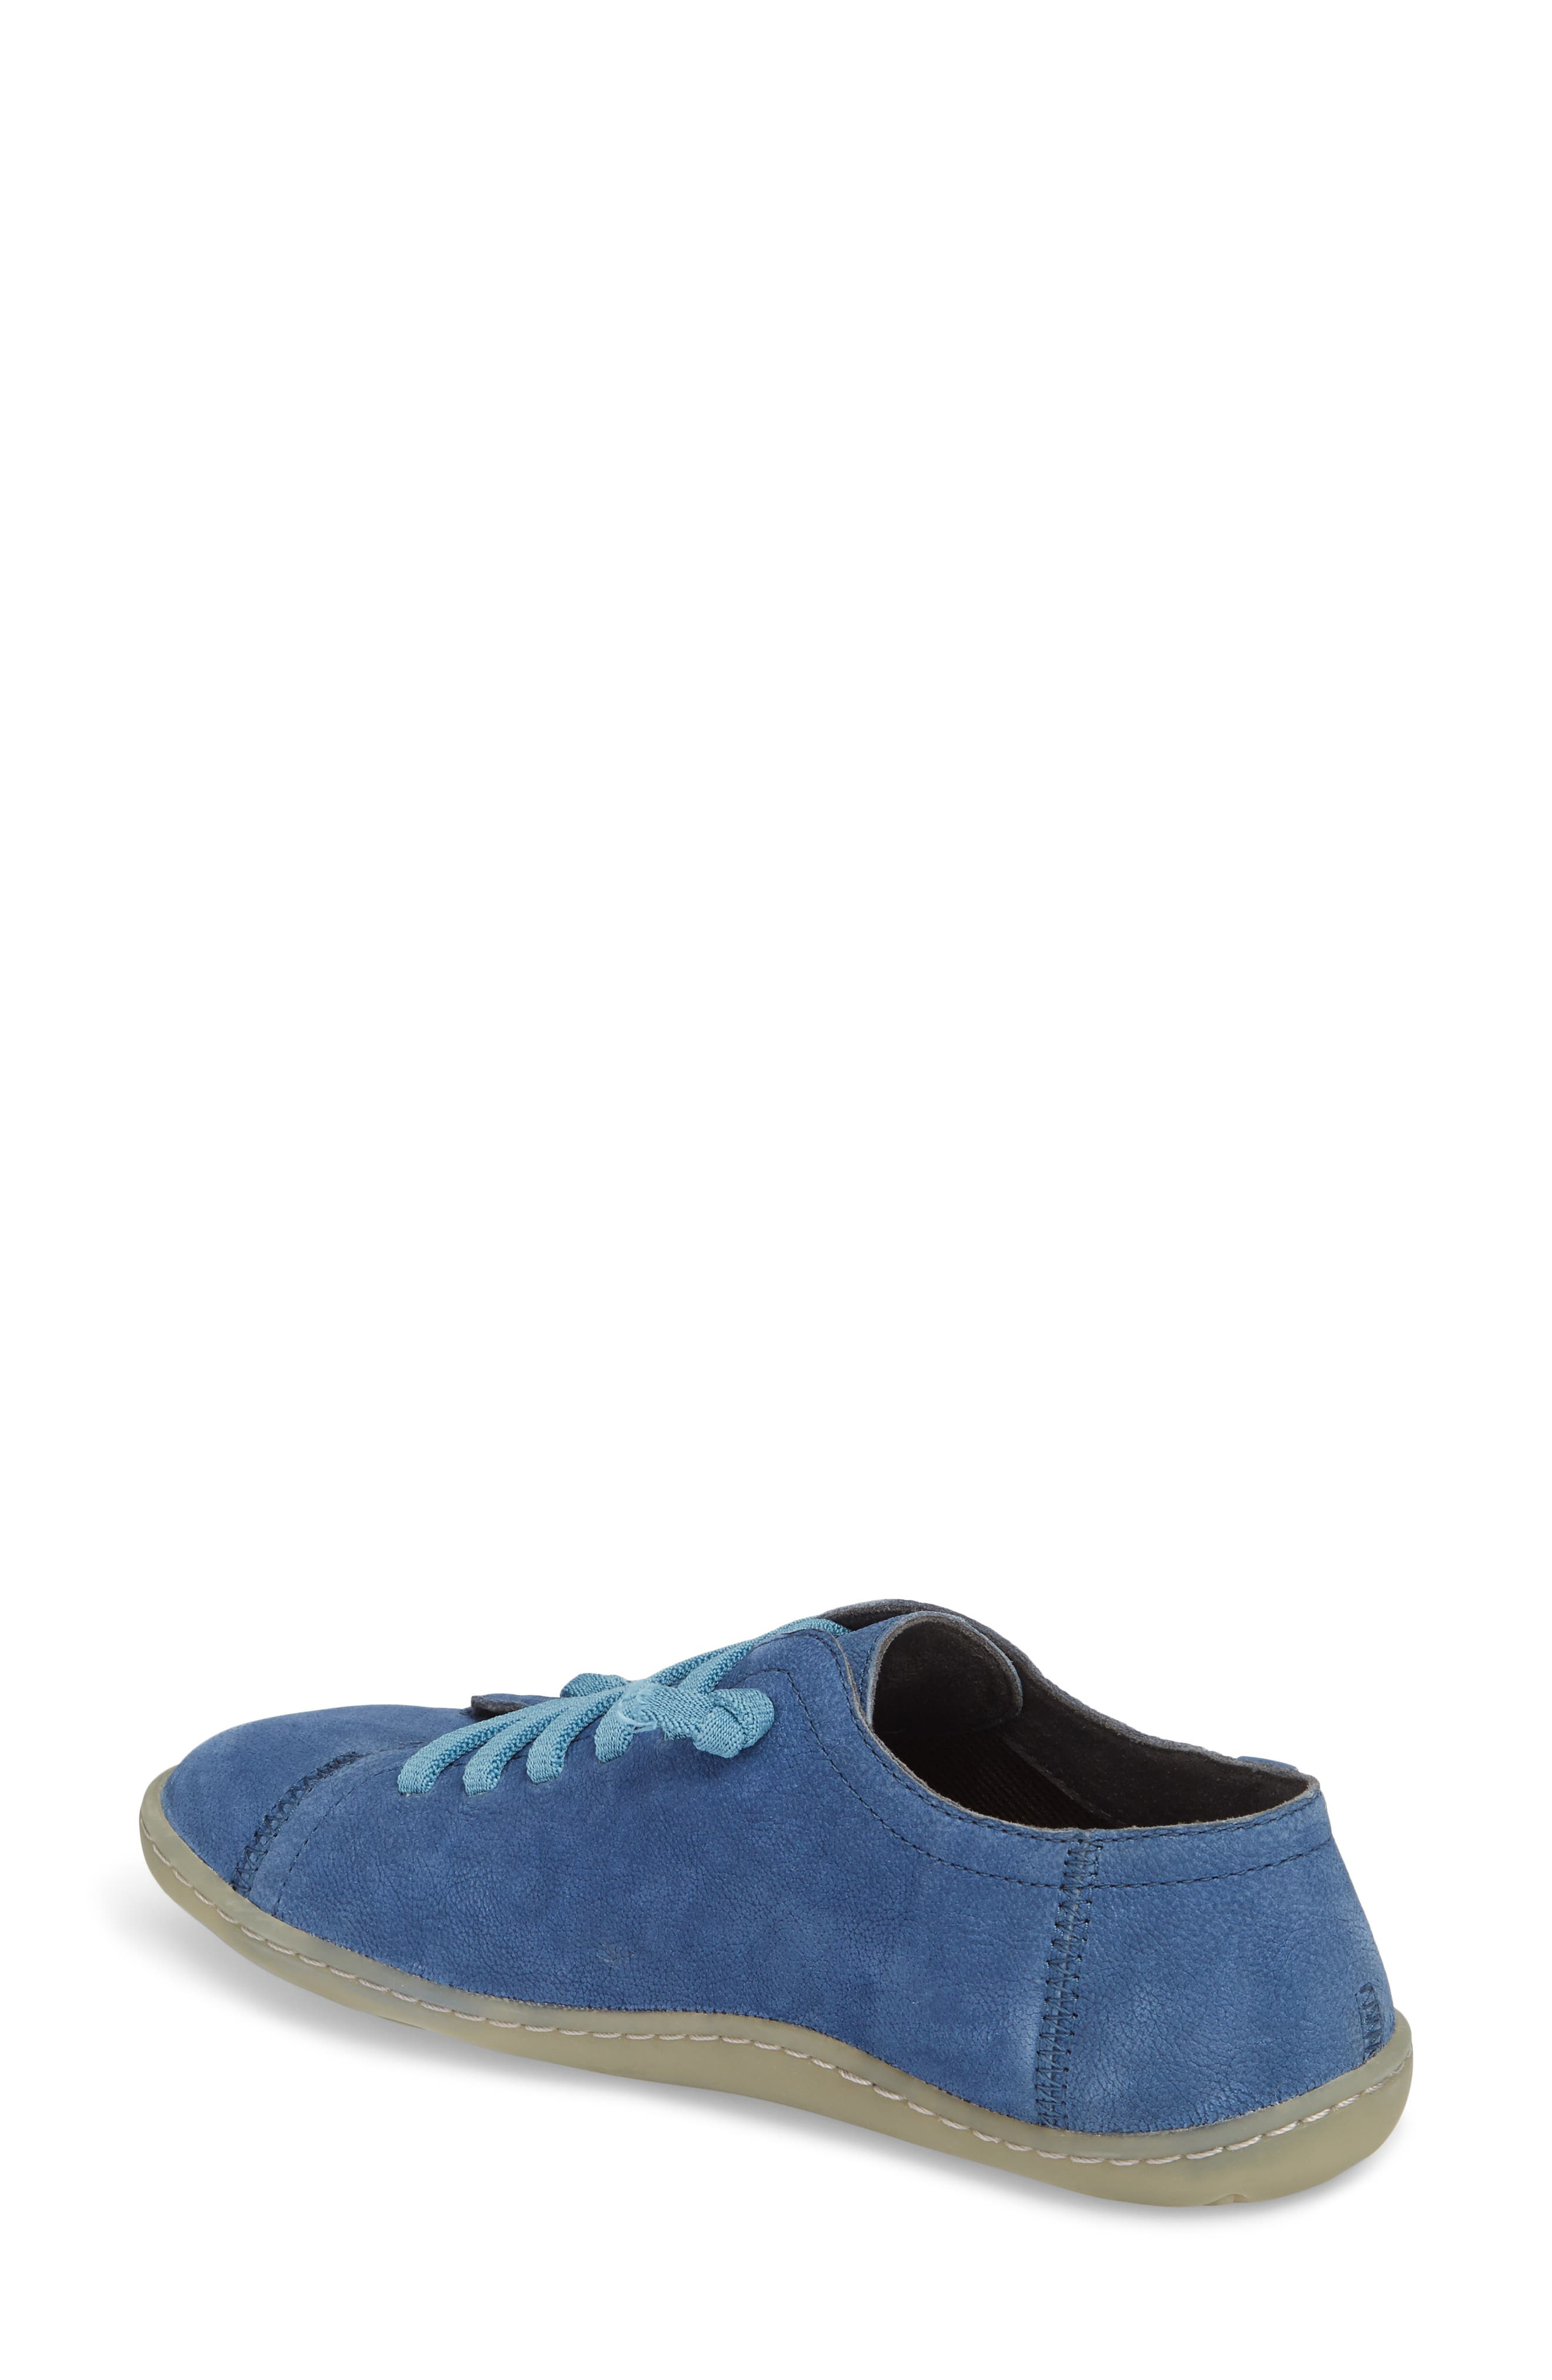 'Peu Cami' Leather Sneaker,                             Alternate thumbnail 2, color,                             420